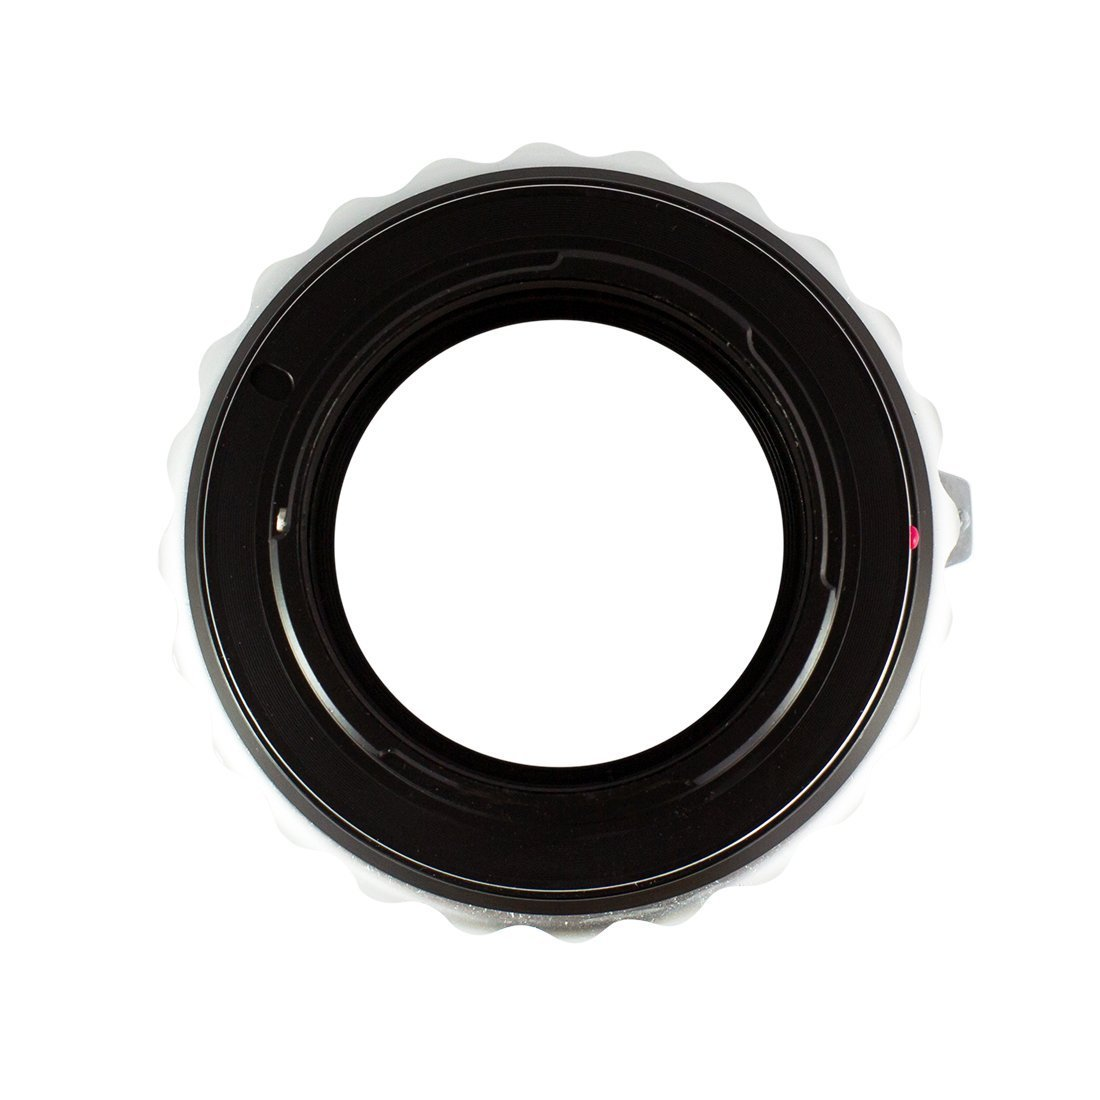 Gobe Lens Adapter Compatible With Nikon F Mount Hoya Uvc Hmc Phl Filter 67mm Camera Photo